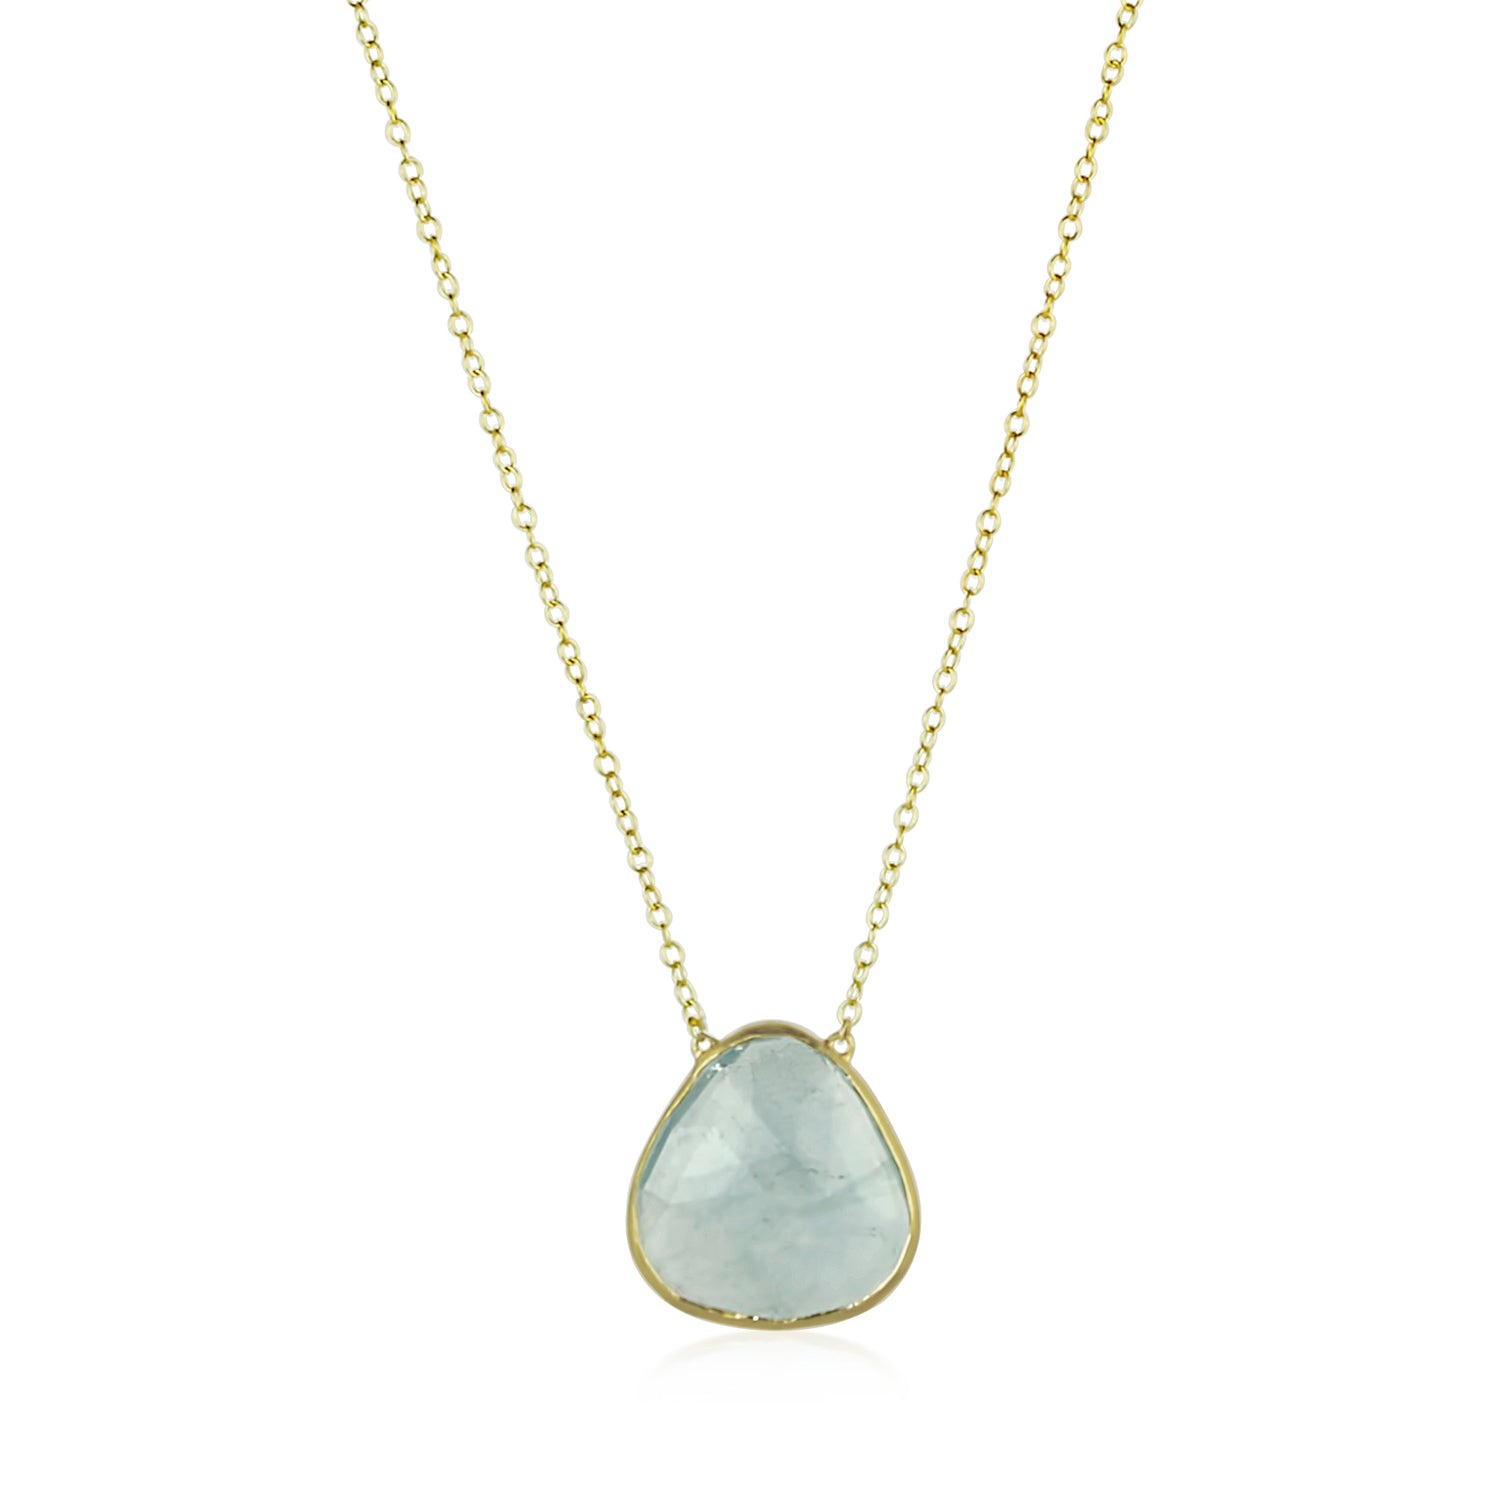 Gold Aquamarine Necklace